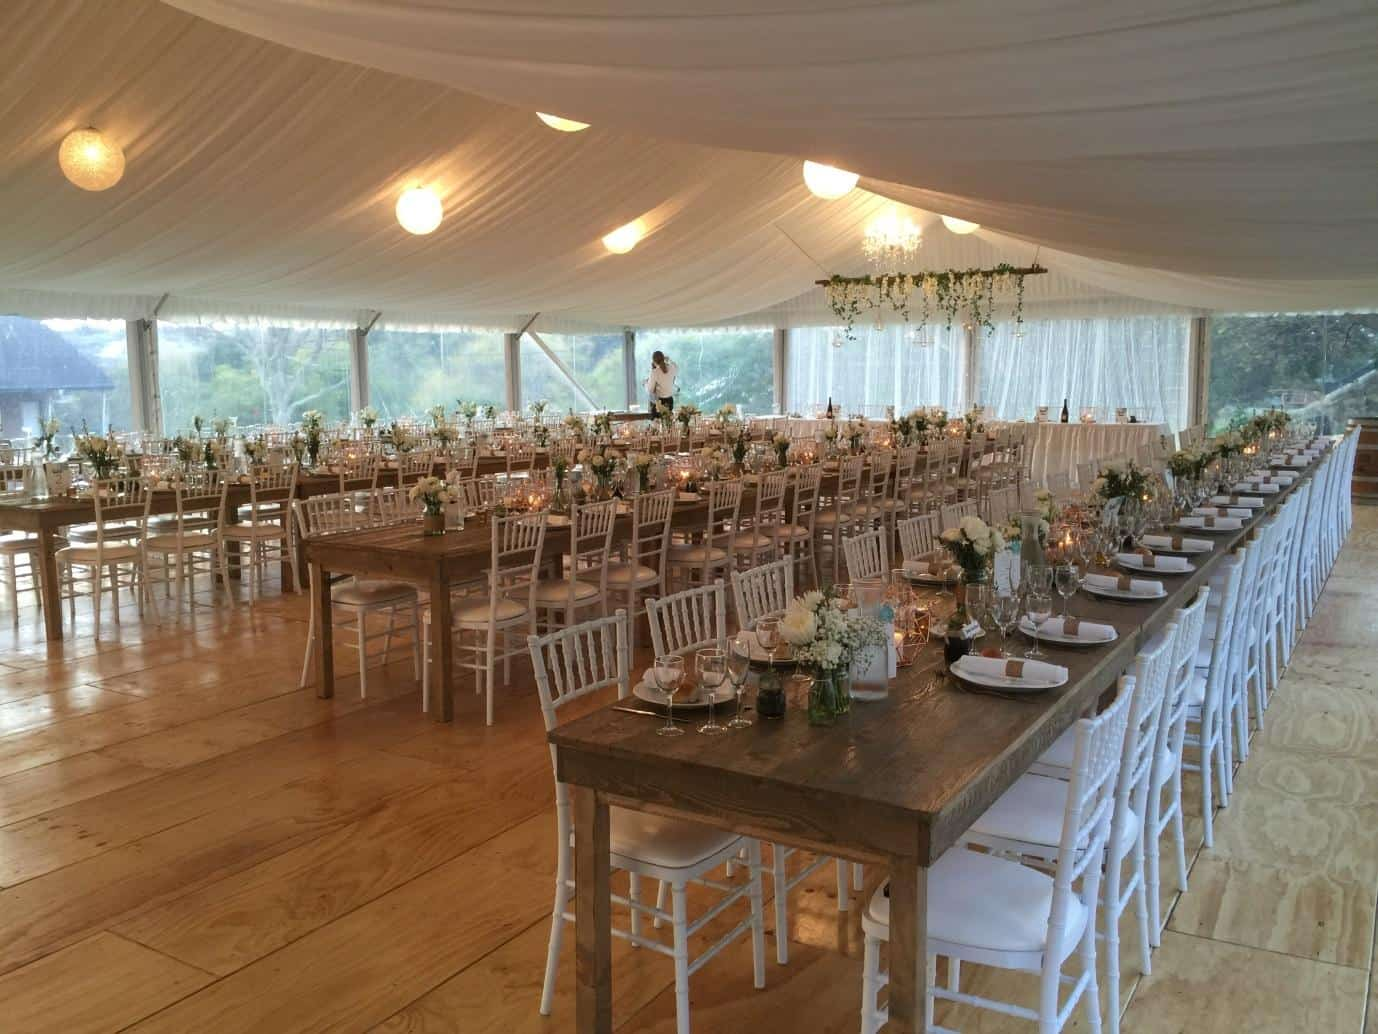 Tables and chairs inside a white draped marquee - a white and rustic theme for a country wedding